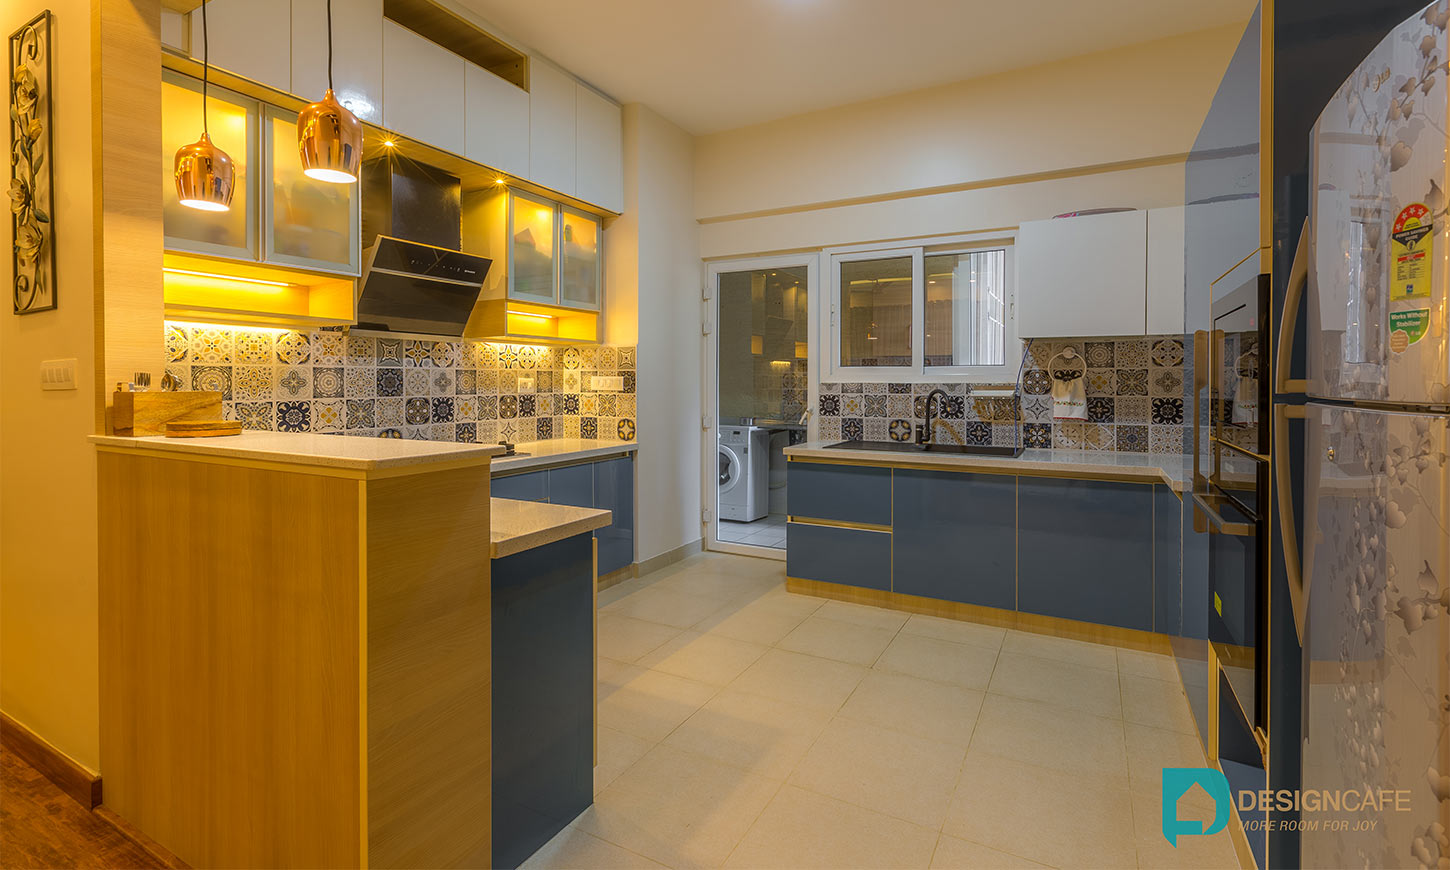 Fantastic modular kitchen designed which is one of the best home interiors bangalore